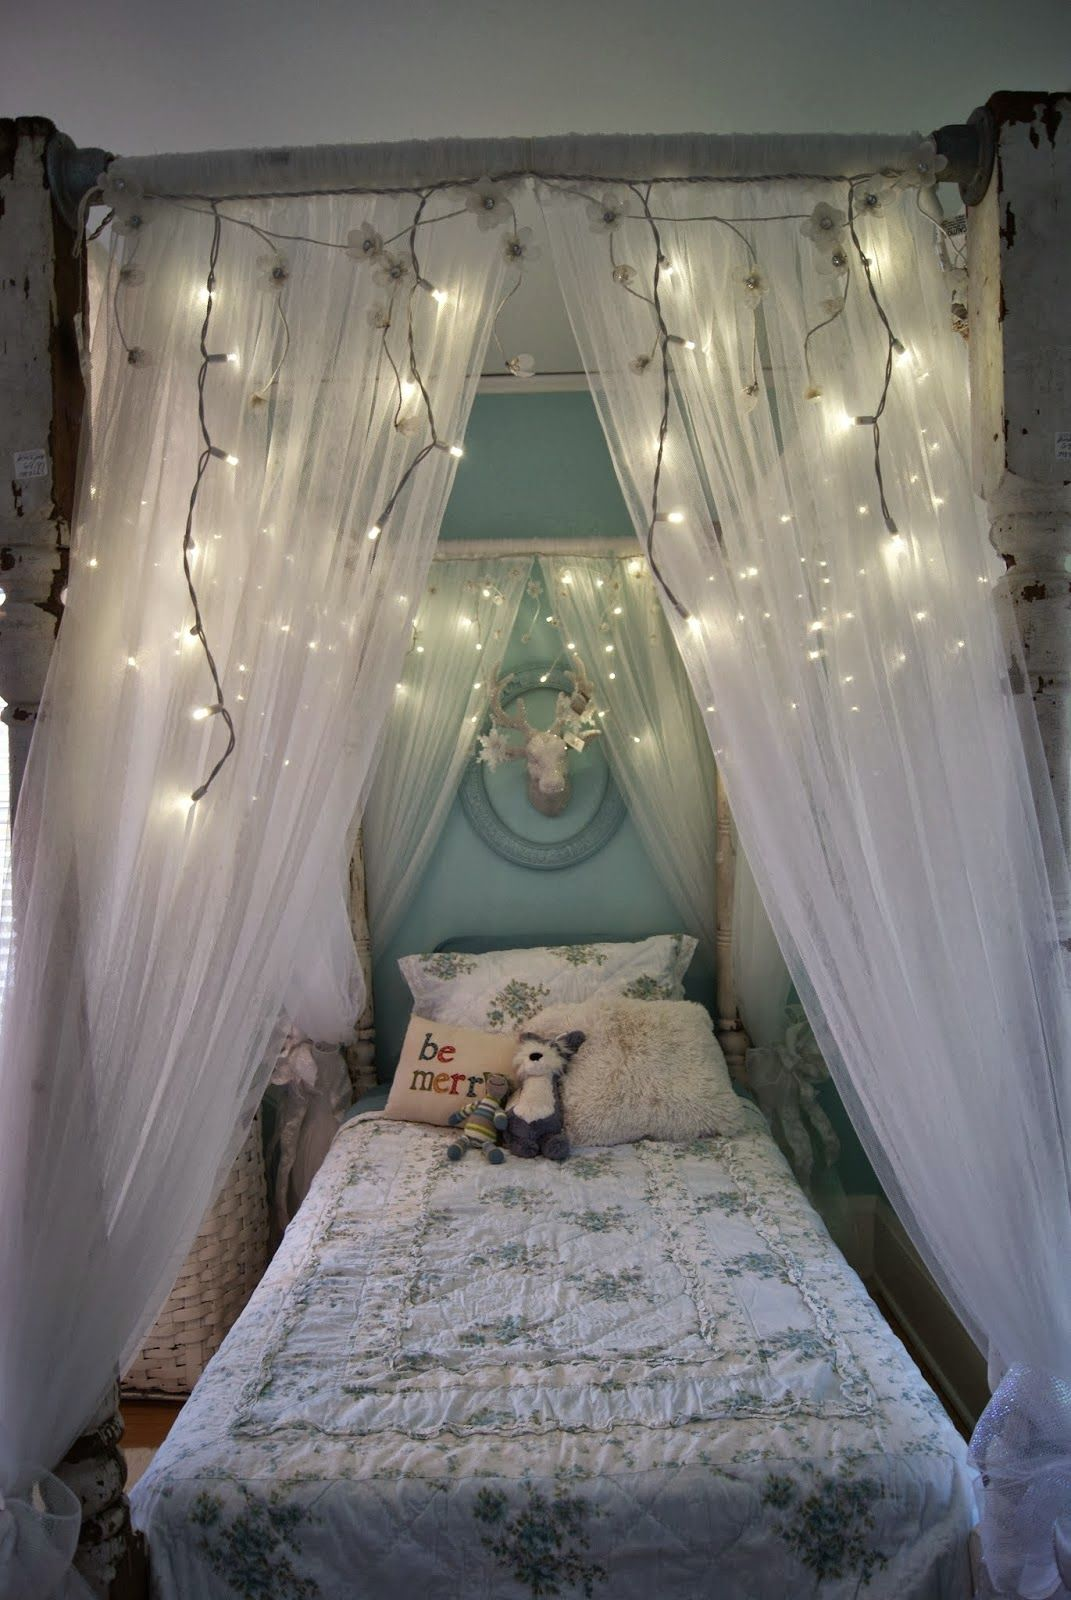 Ideas For Diy Canopy Bed Frame And Curtains With Images Canopy Bed Diy Canopy Bed Frame Bed Canopy With Lights